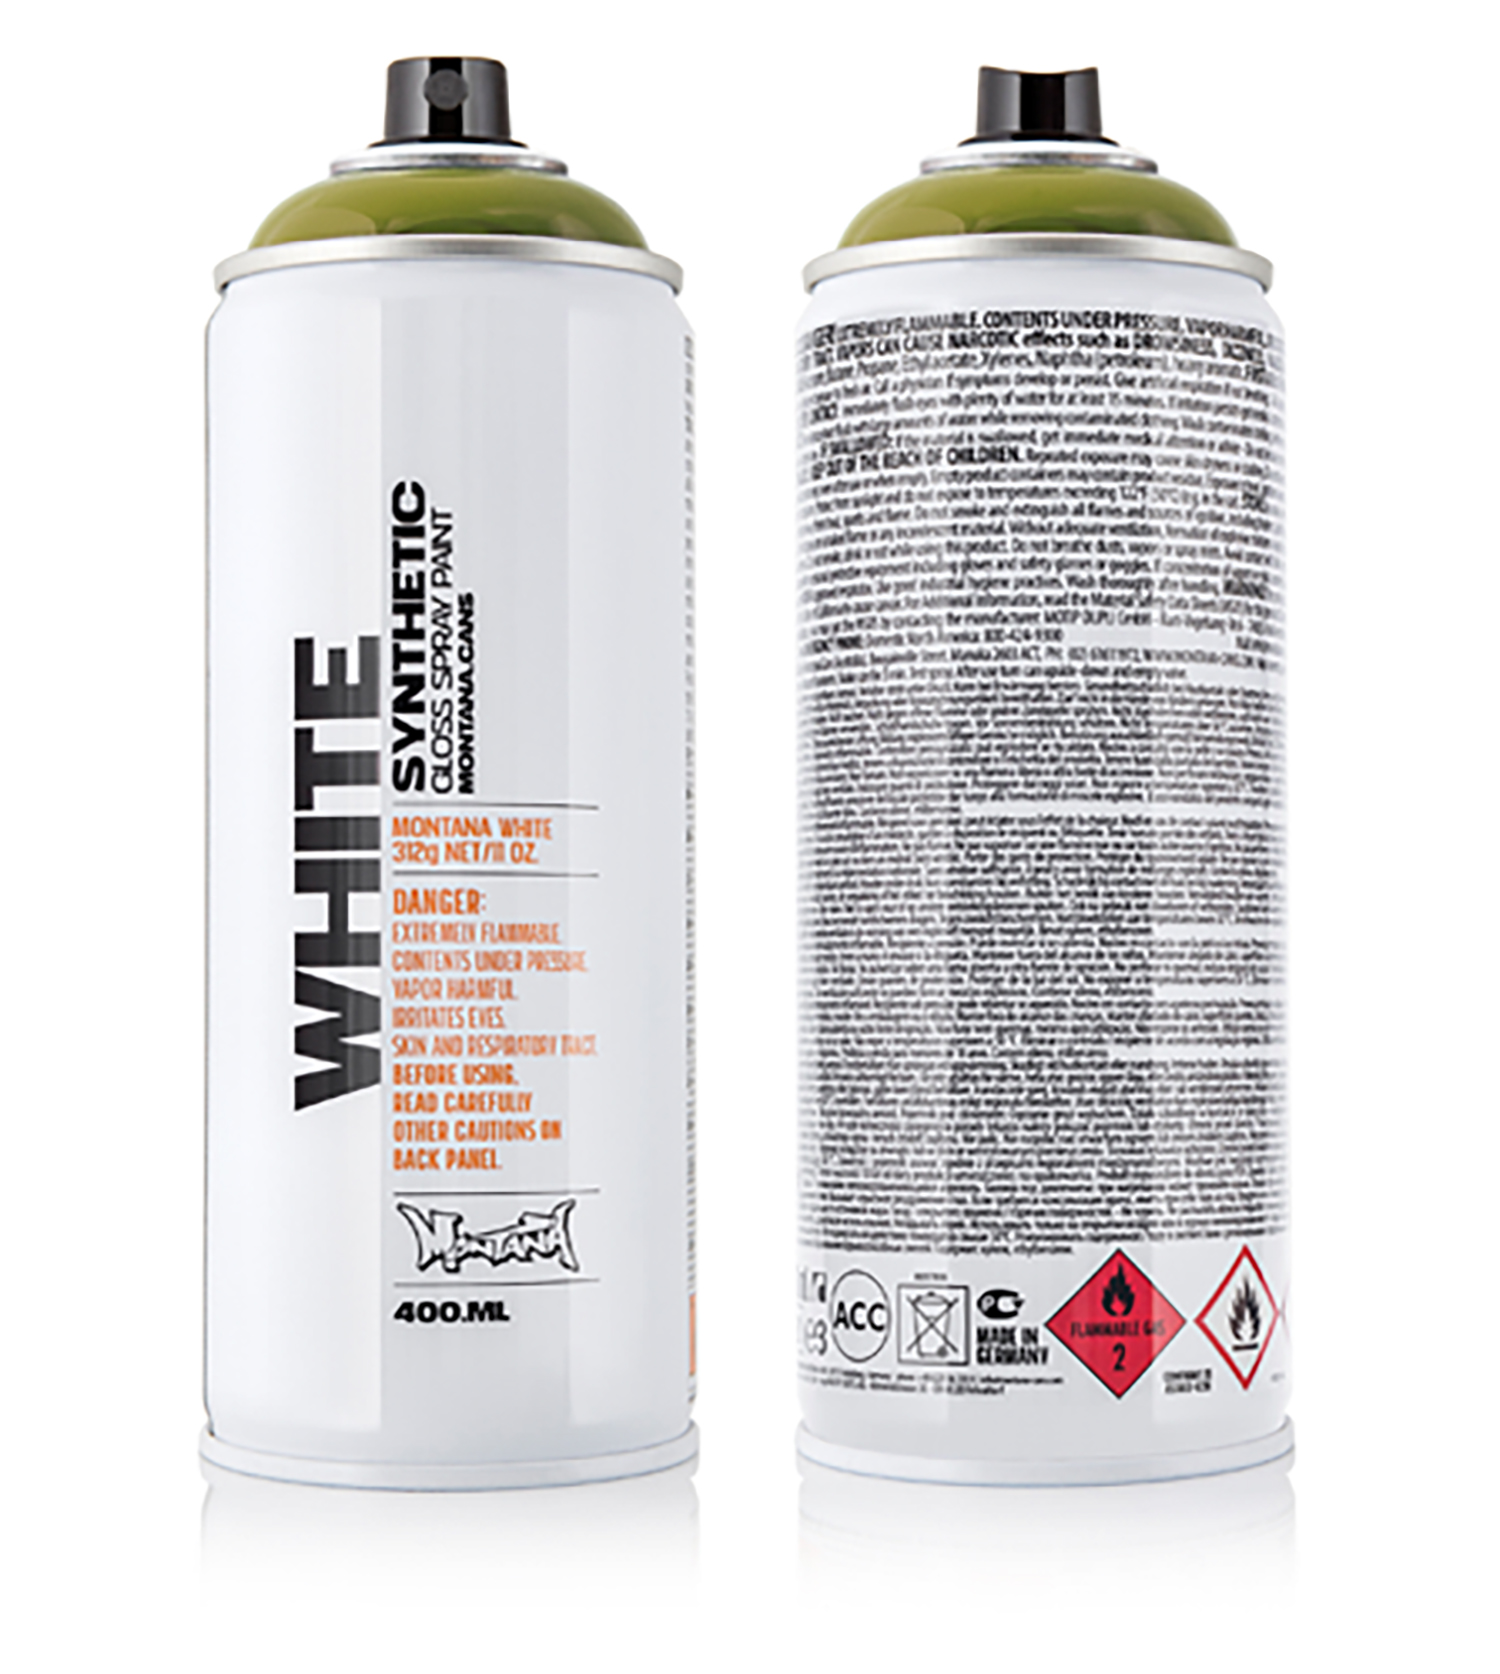 MONTANA-WHITE-SPRAY-400ML-1160